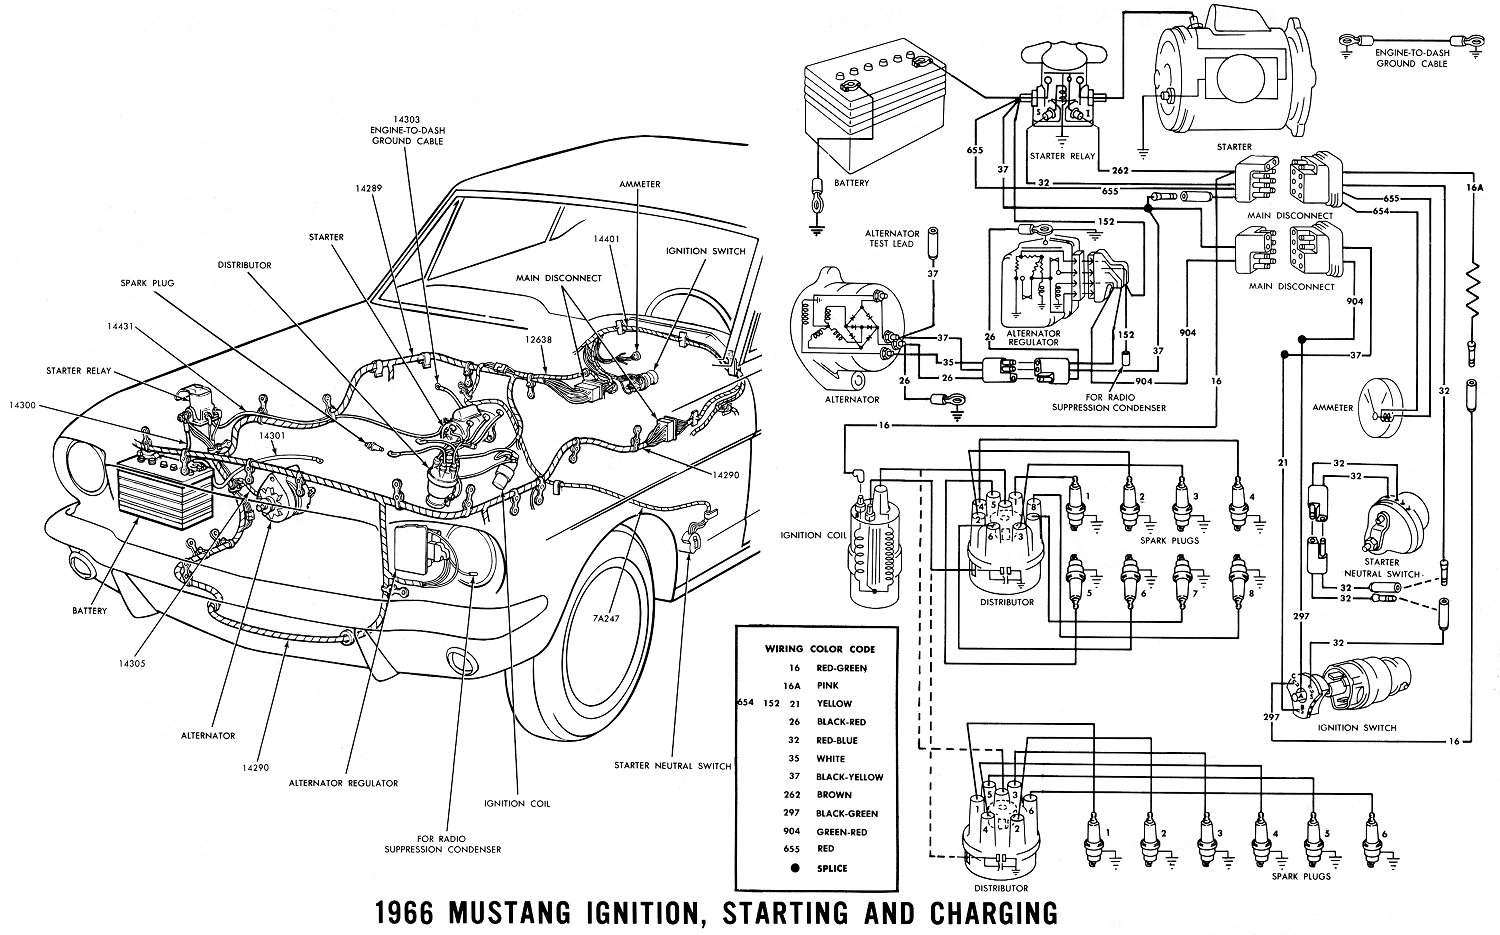 66ignit 1966 mustang wiring diagrams average joe restoration 66 mustang engine wiring diagram free at soozxer.org